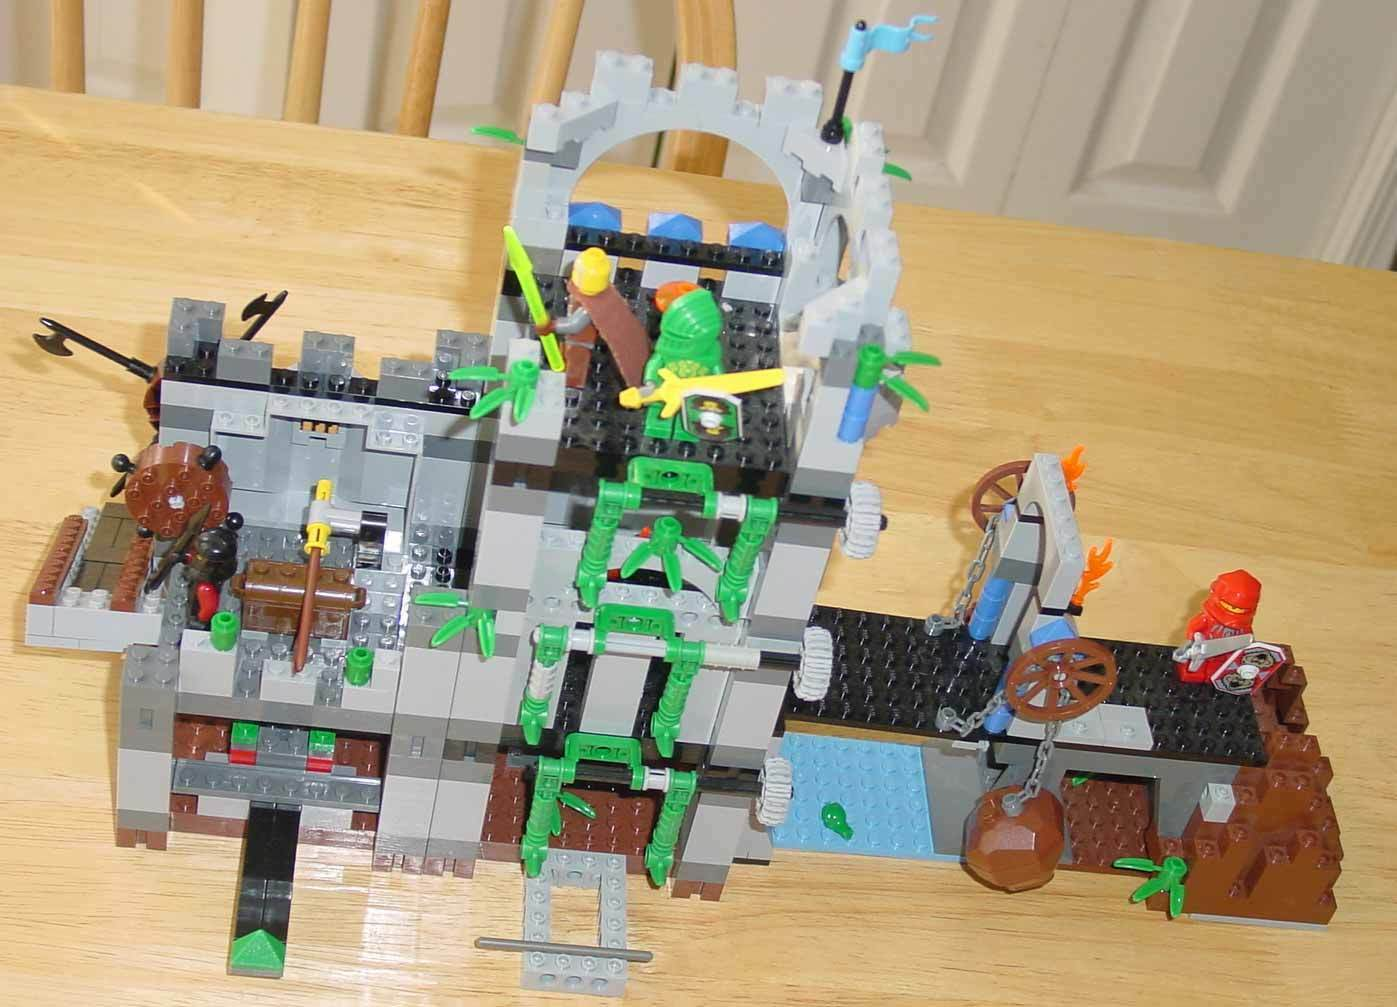 LEGO CASTLE CASTLE CASTLE 8780 KNIGHT'S KINGDOM CITALDEL OF ORLAN - COMPLETE b4a69a